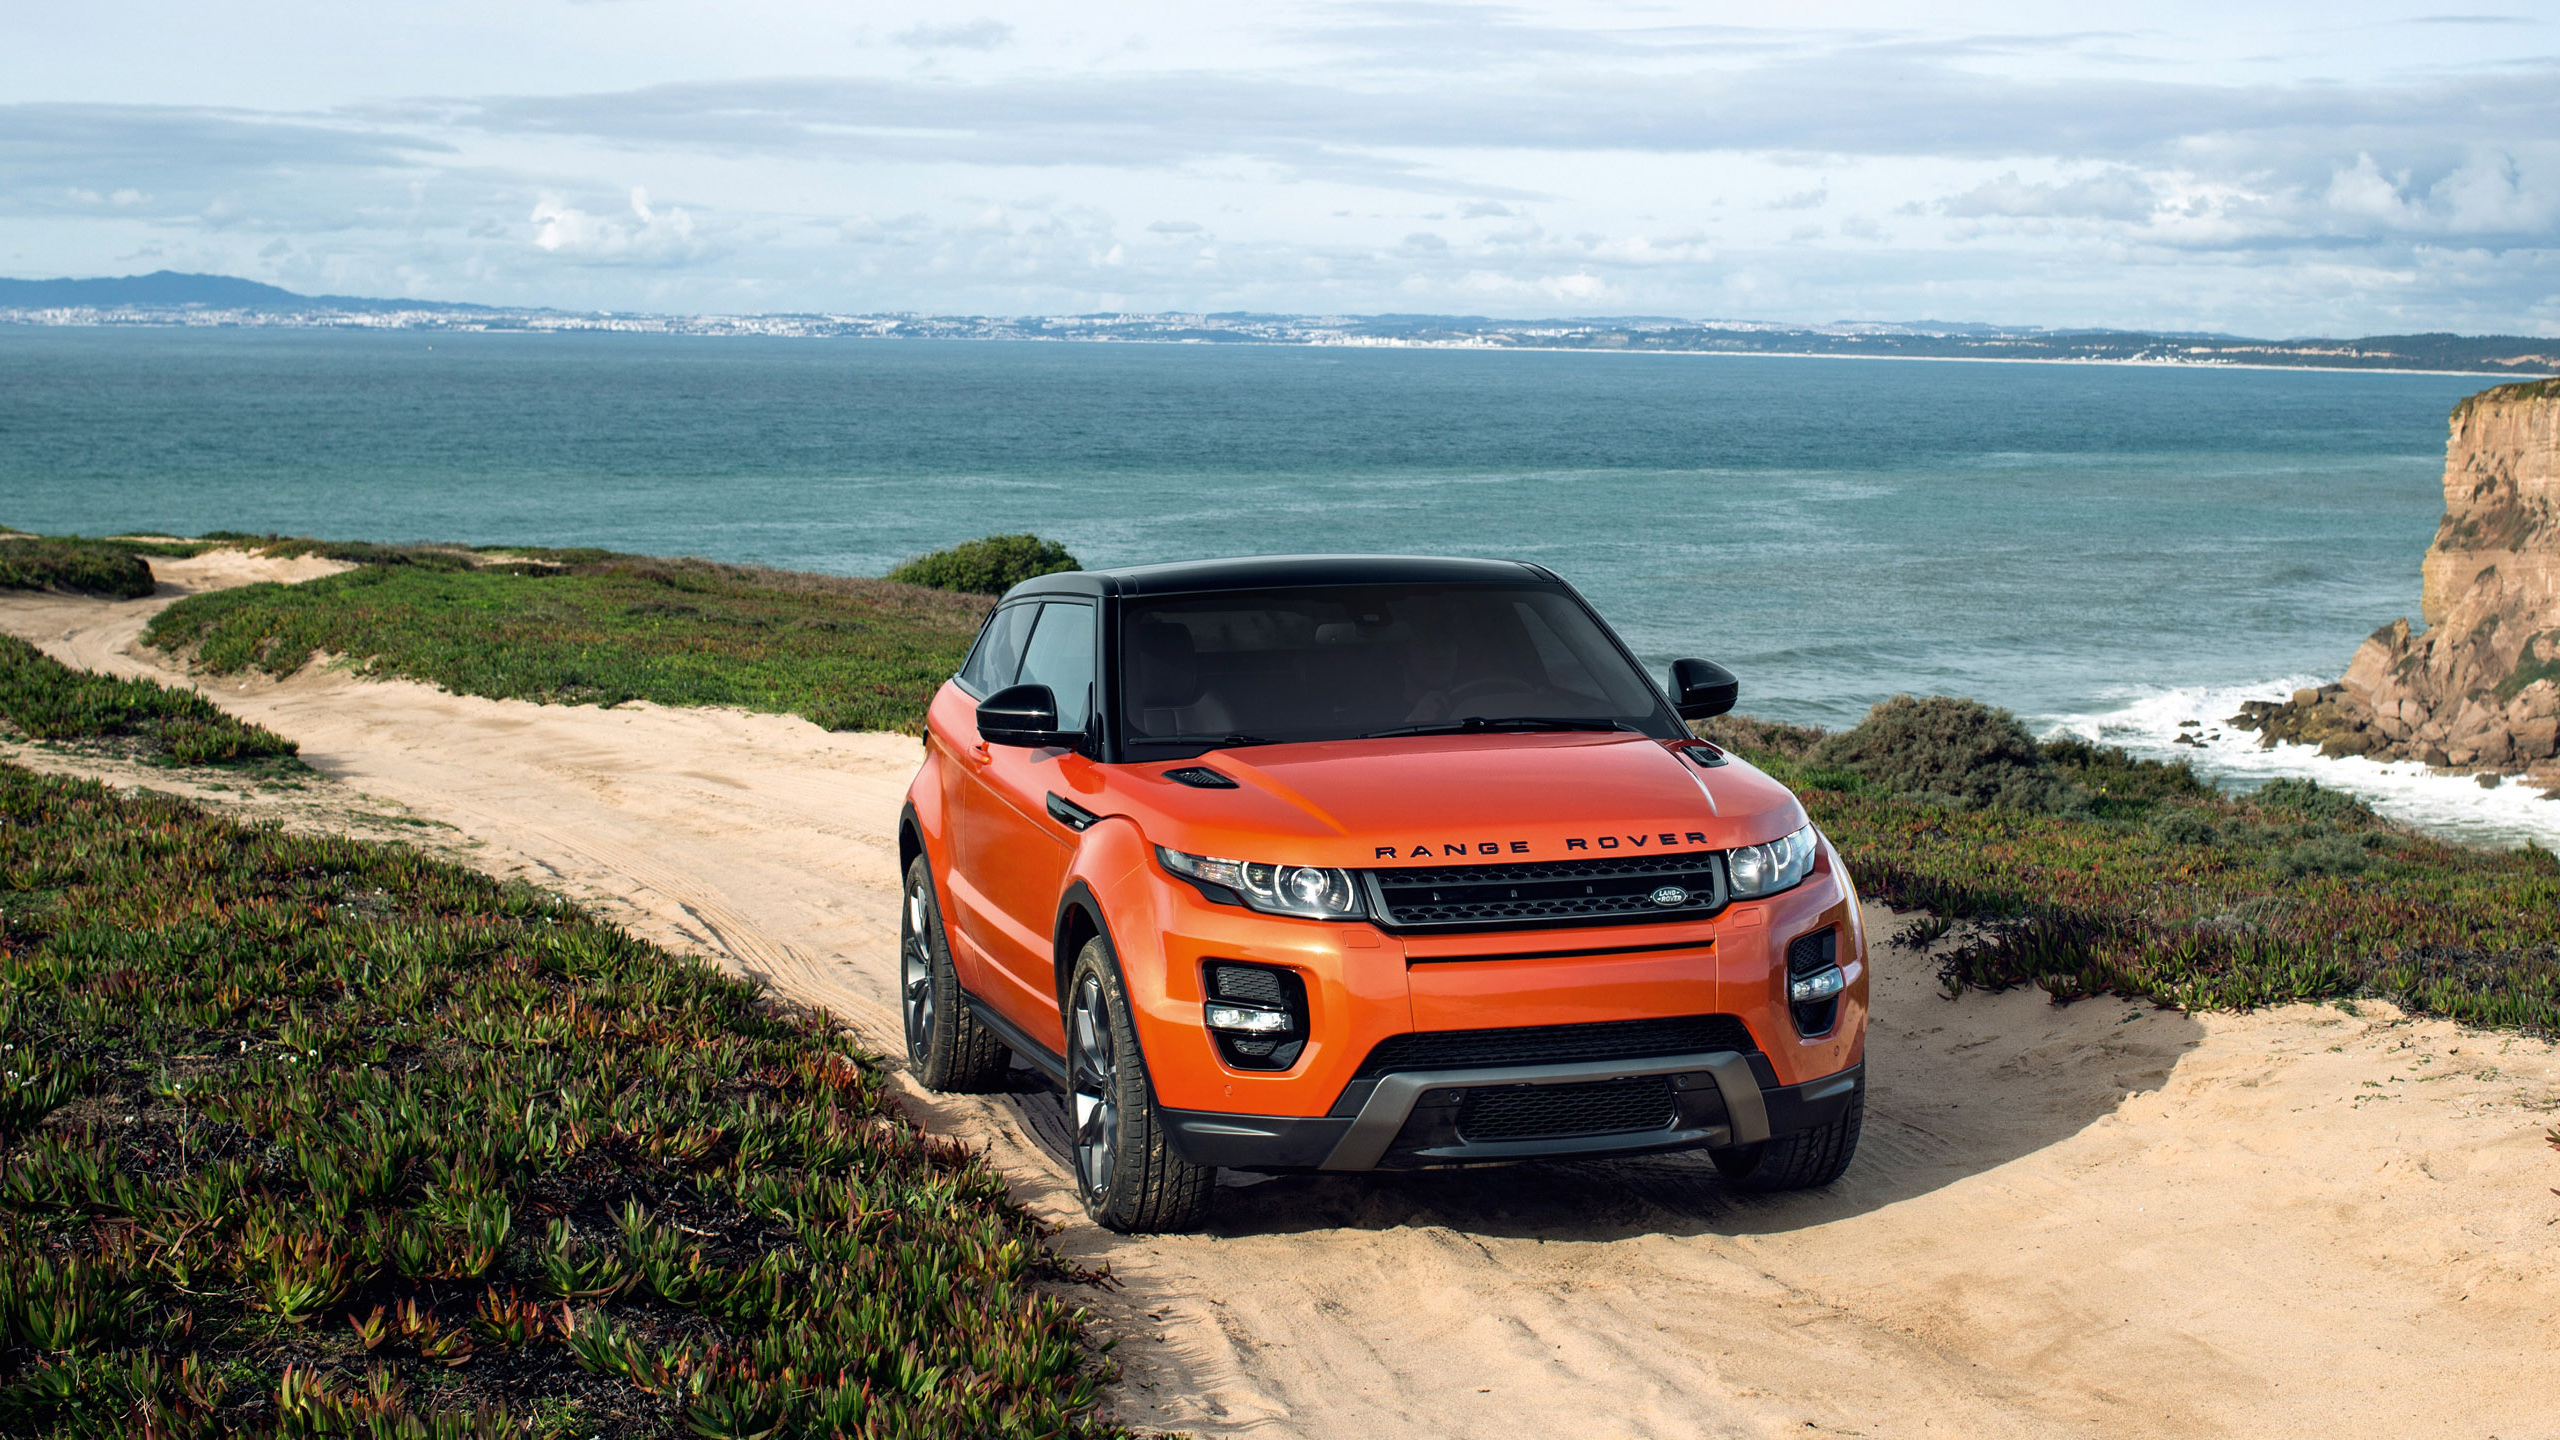 2014 Land Rover Range Rover Evoque Autobiography Dynamic Wallpaper ...